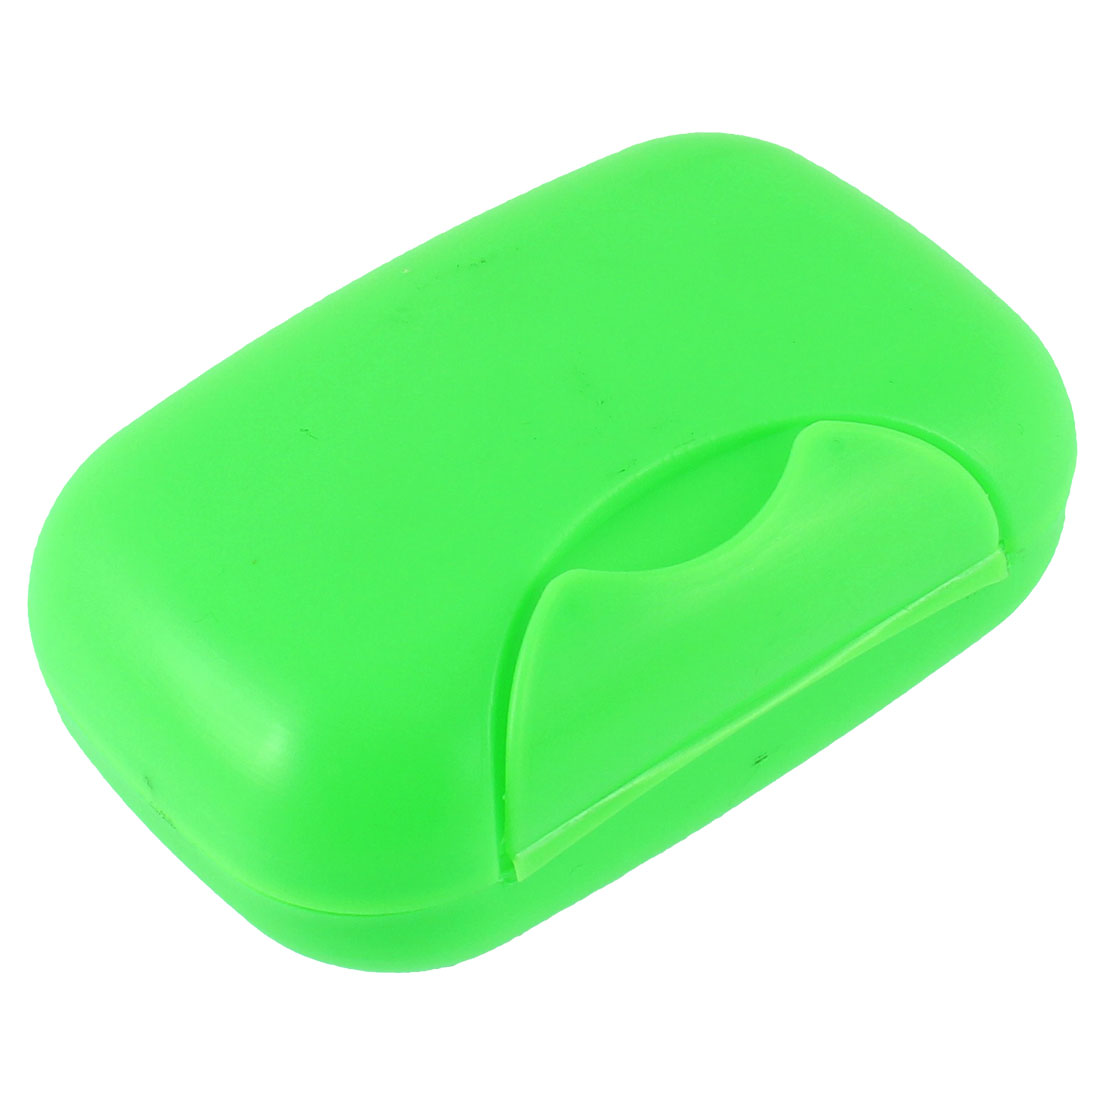 Outdoor Travel Plastic Leakproof Soap Case Holder Container Box Green